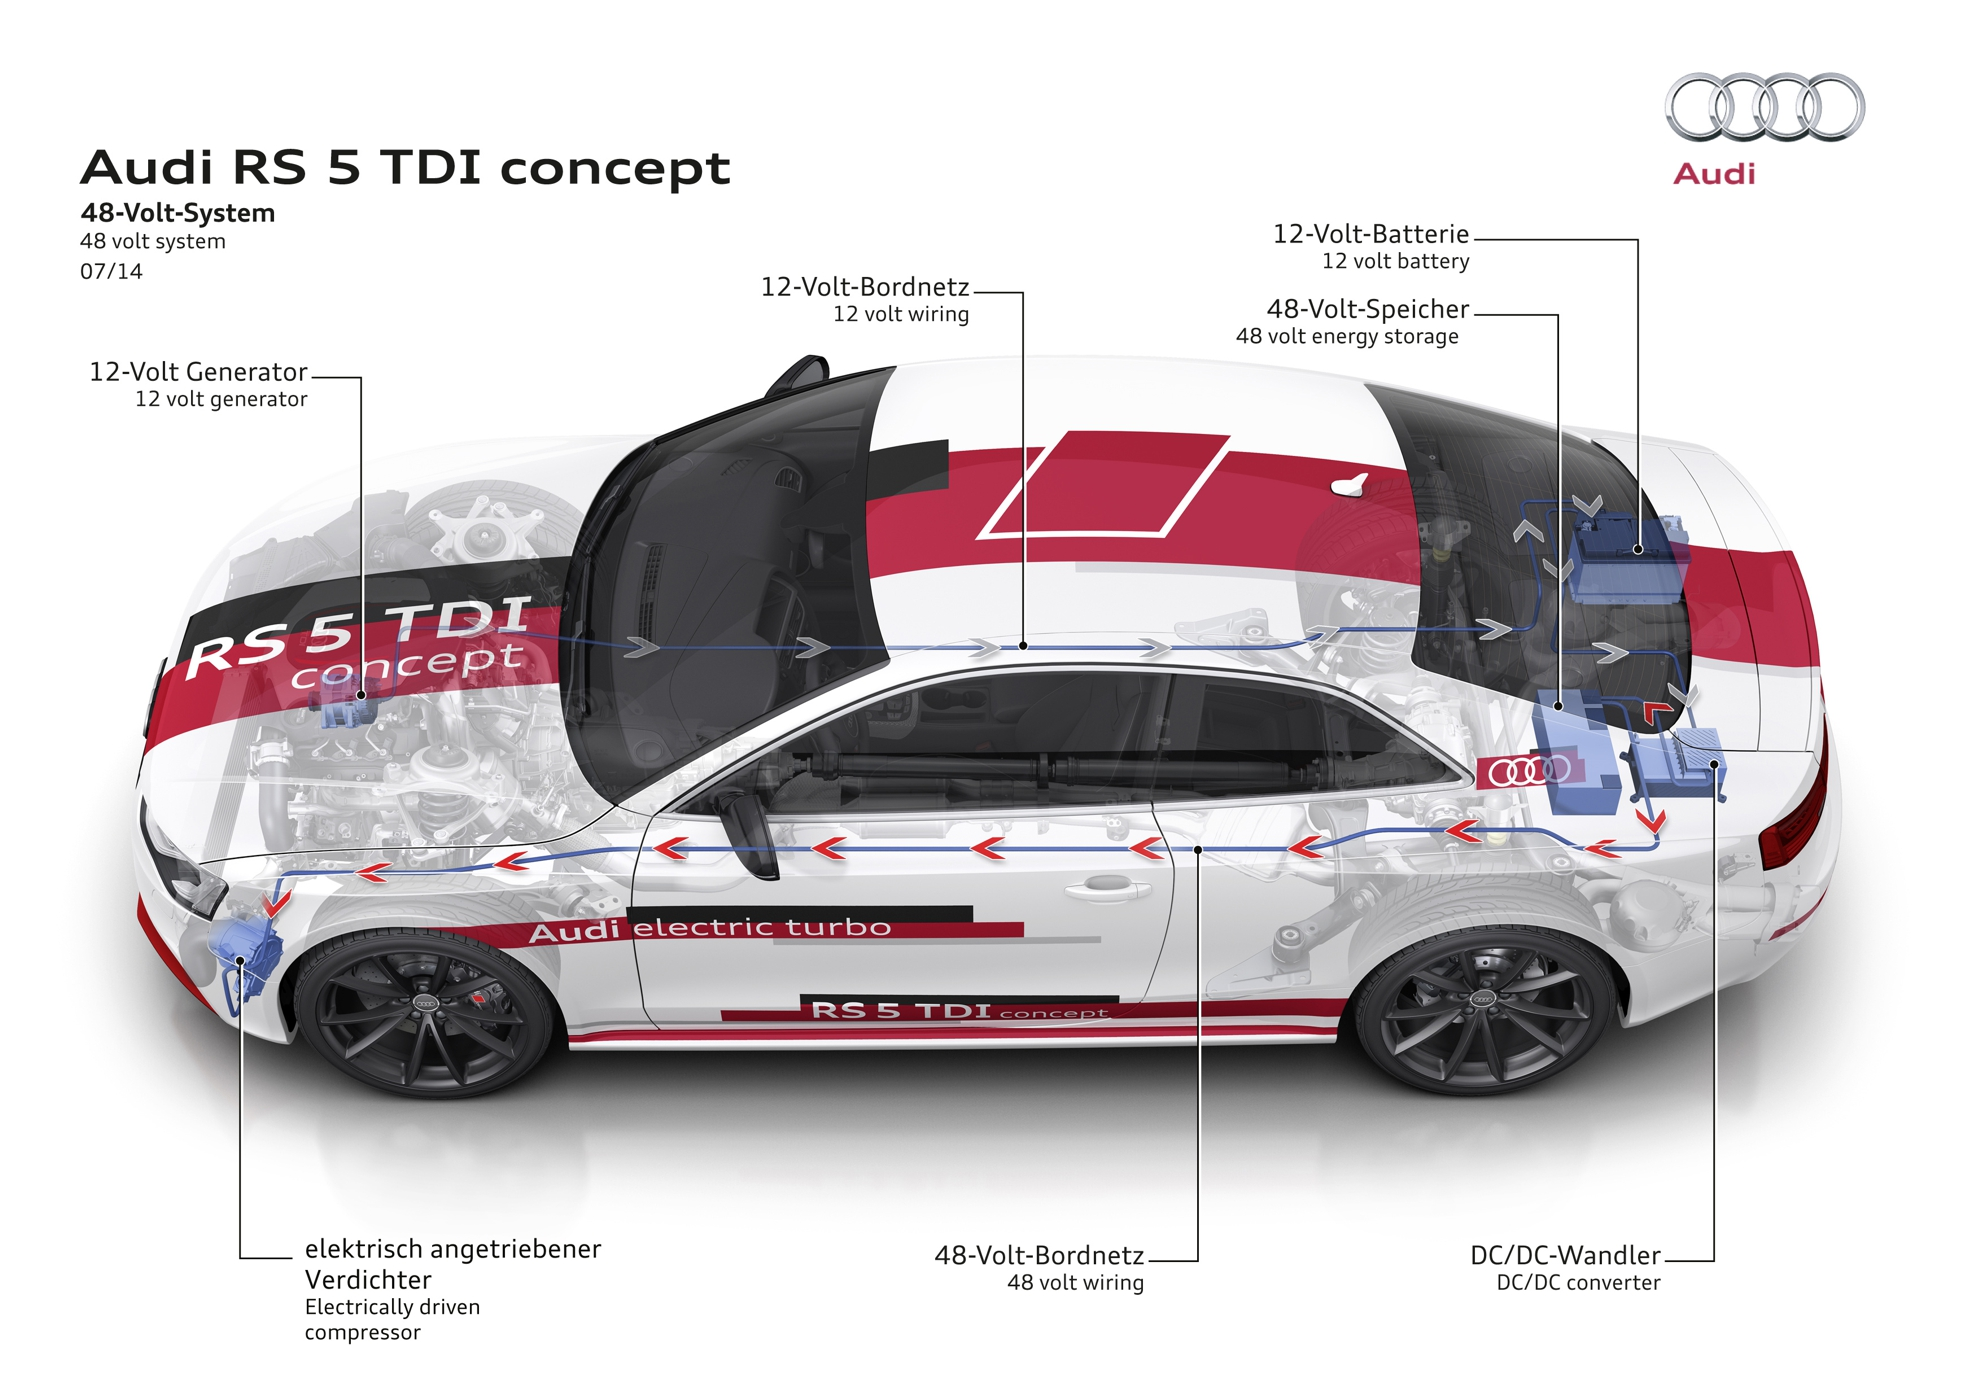 New-48-volt-technology-Audi